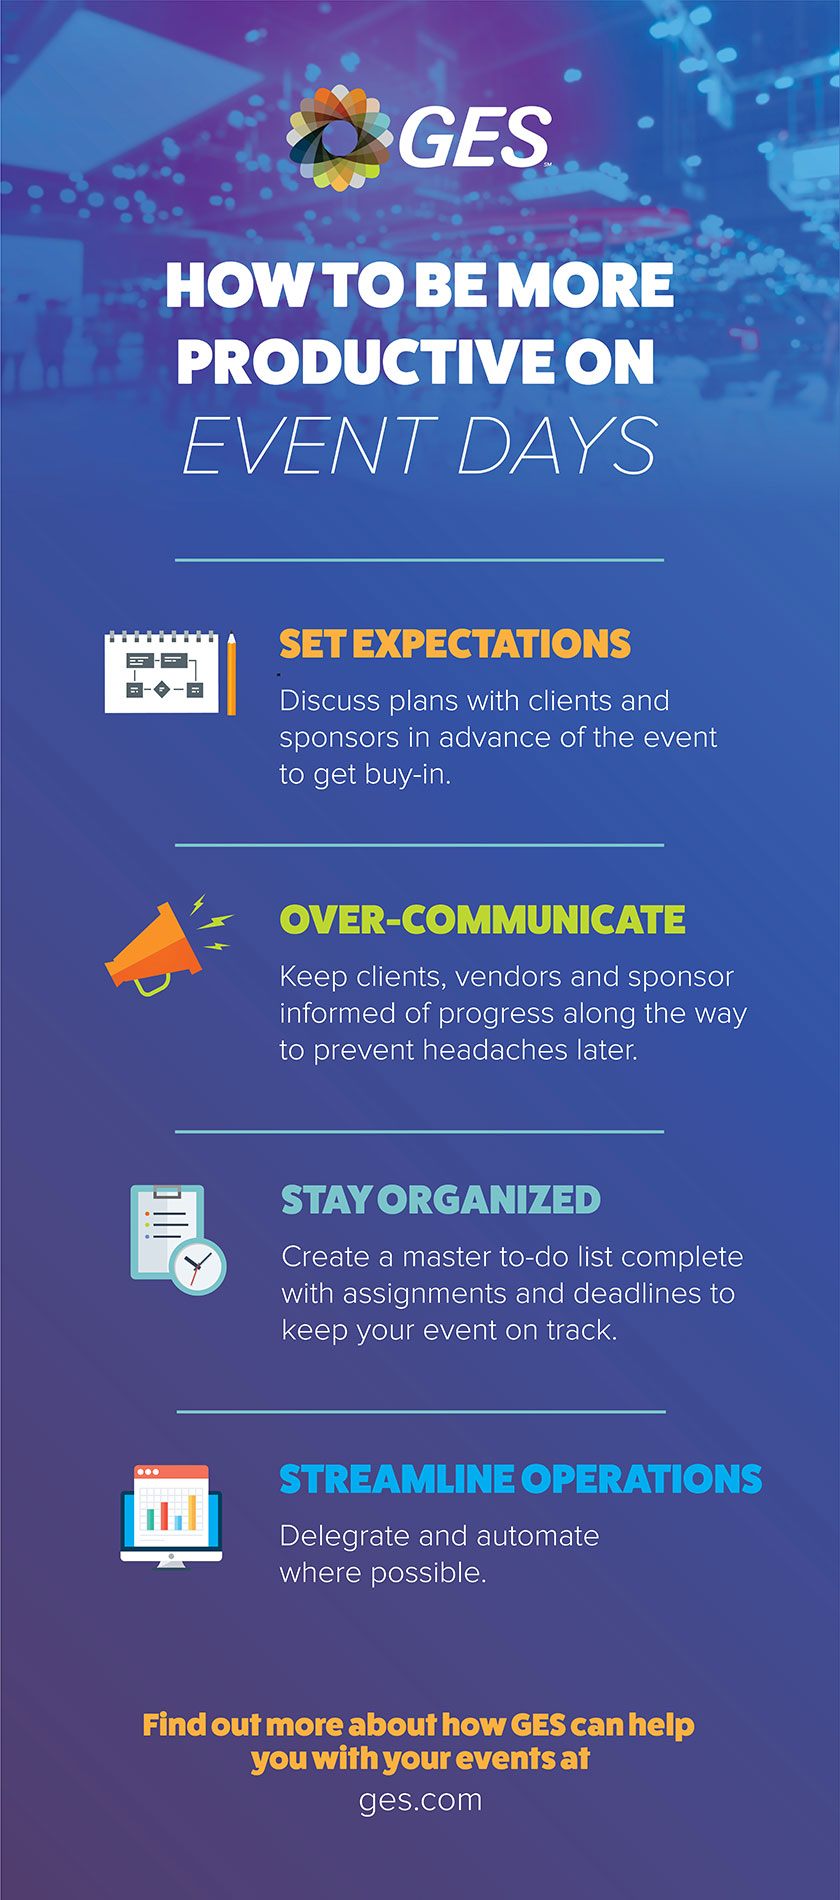 4 Quick Tips to Be More Productive on Event Days